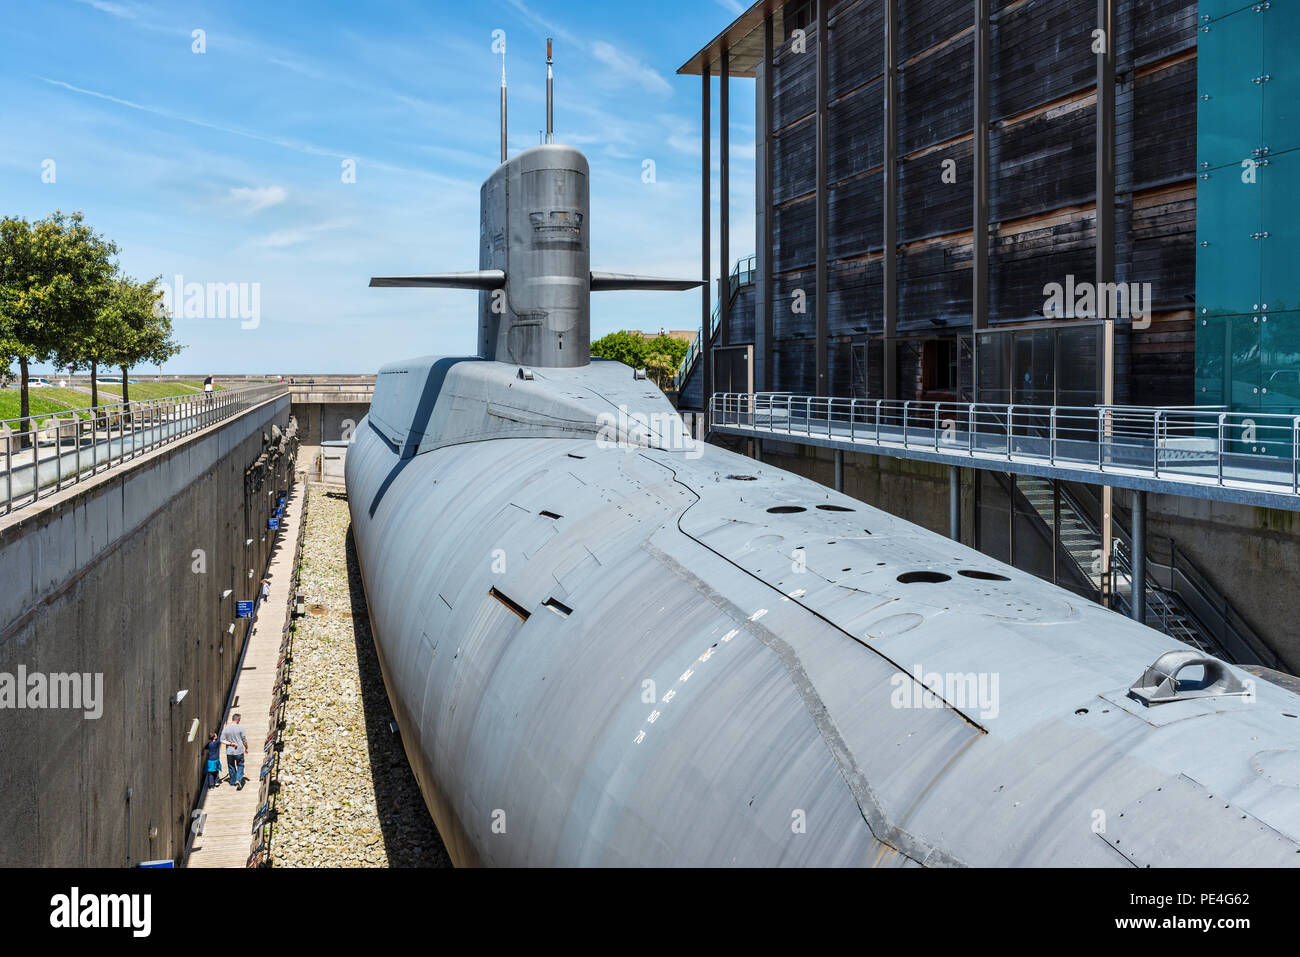 Cherbourg-Octeville, France - May 22, 2017: Nuclear submarine Le Redoutable of French Navy in the 'Cite de la Mer' (City of the Sea), maritime museum  - Stock Image